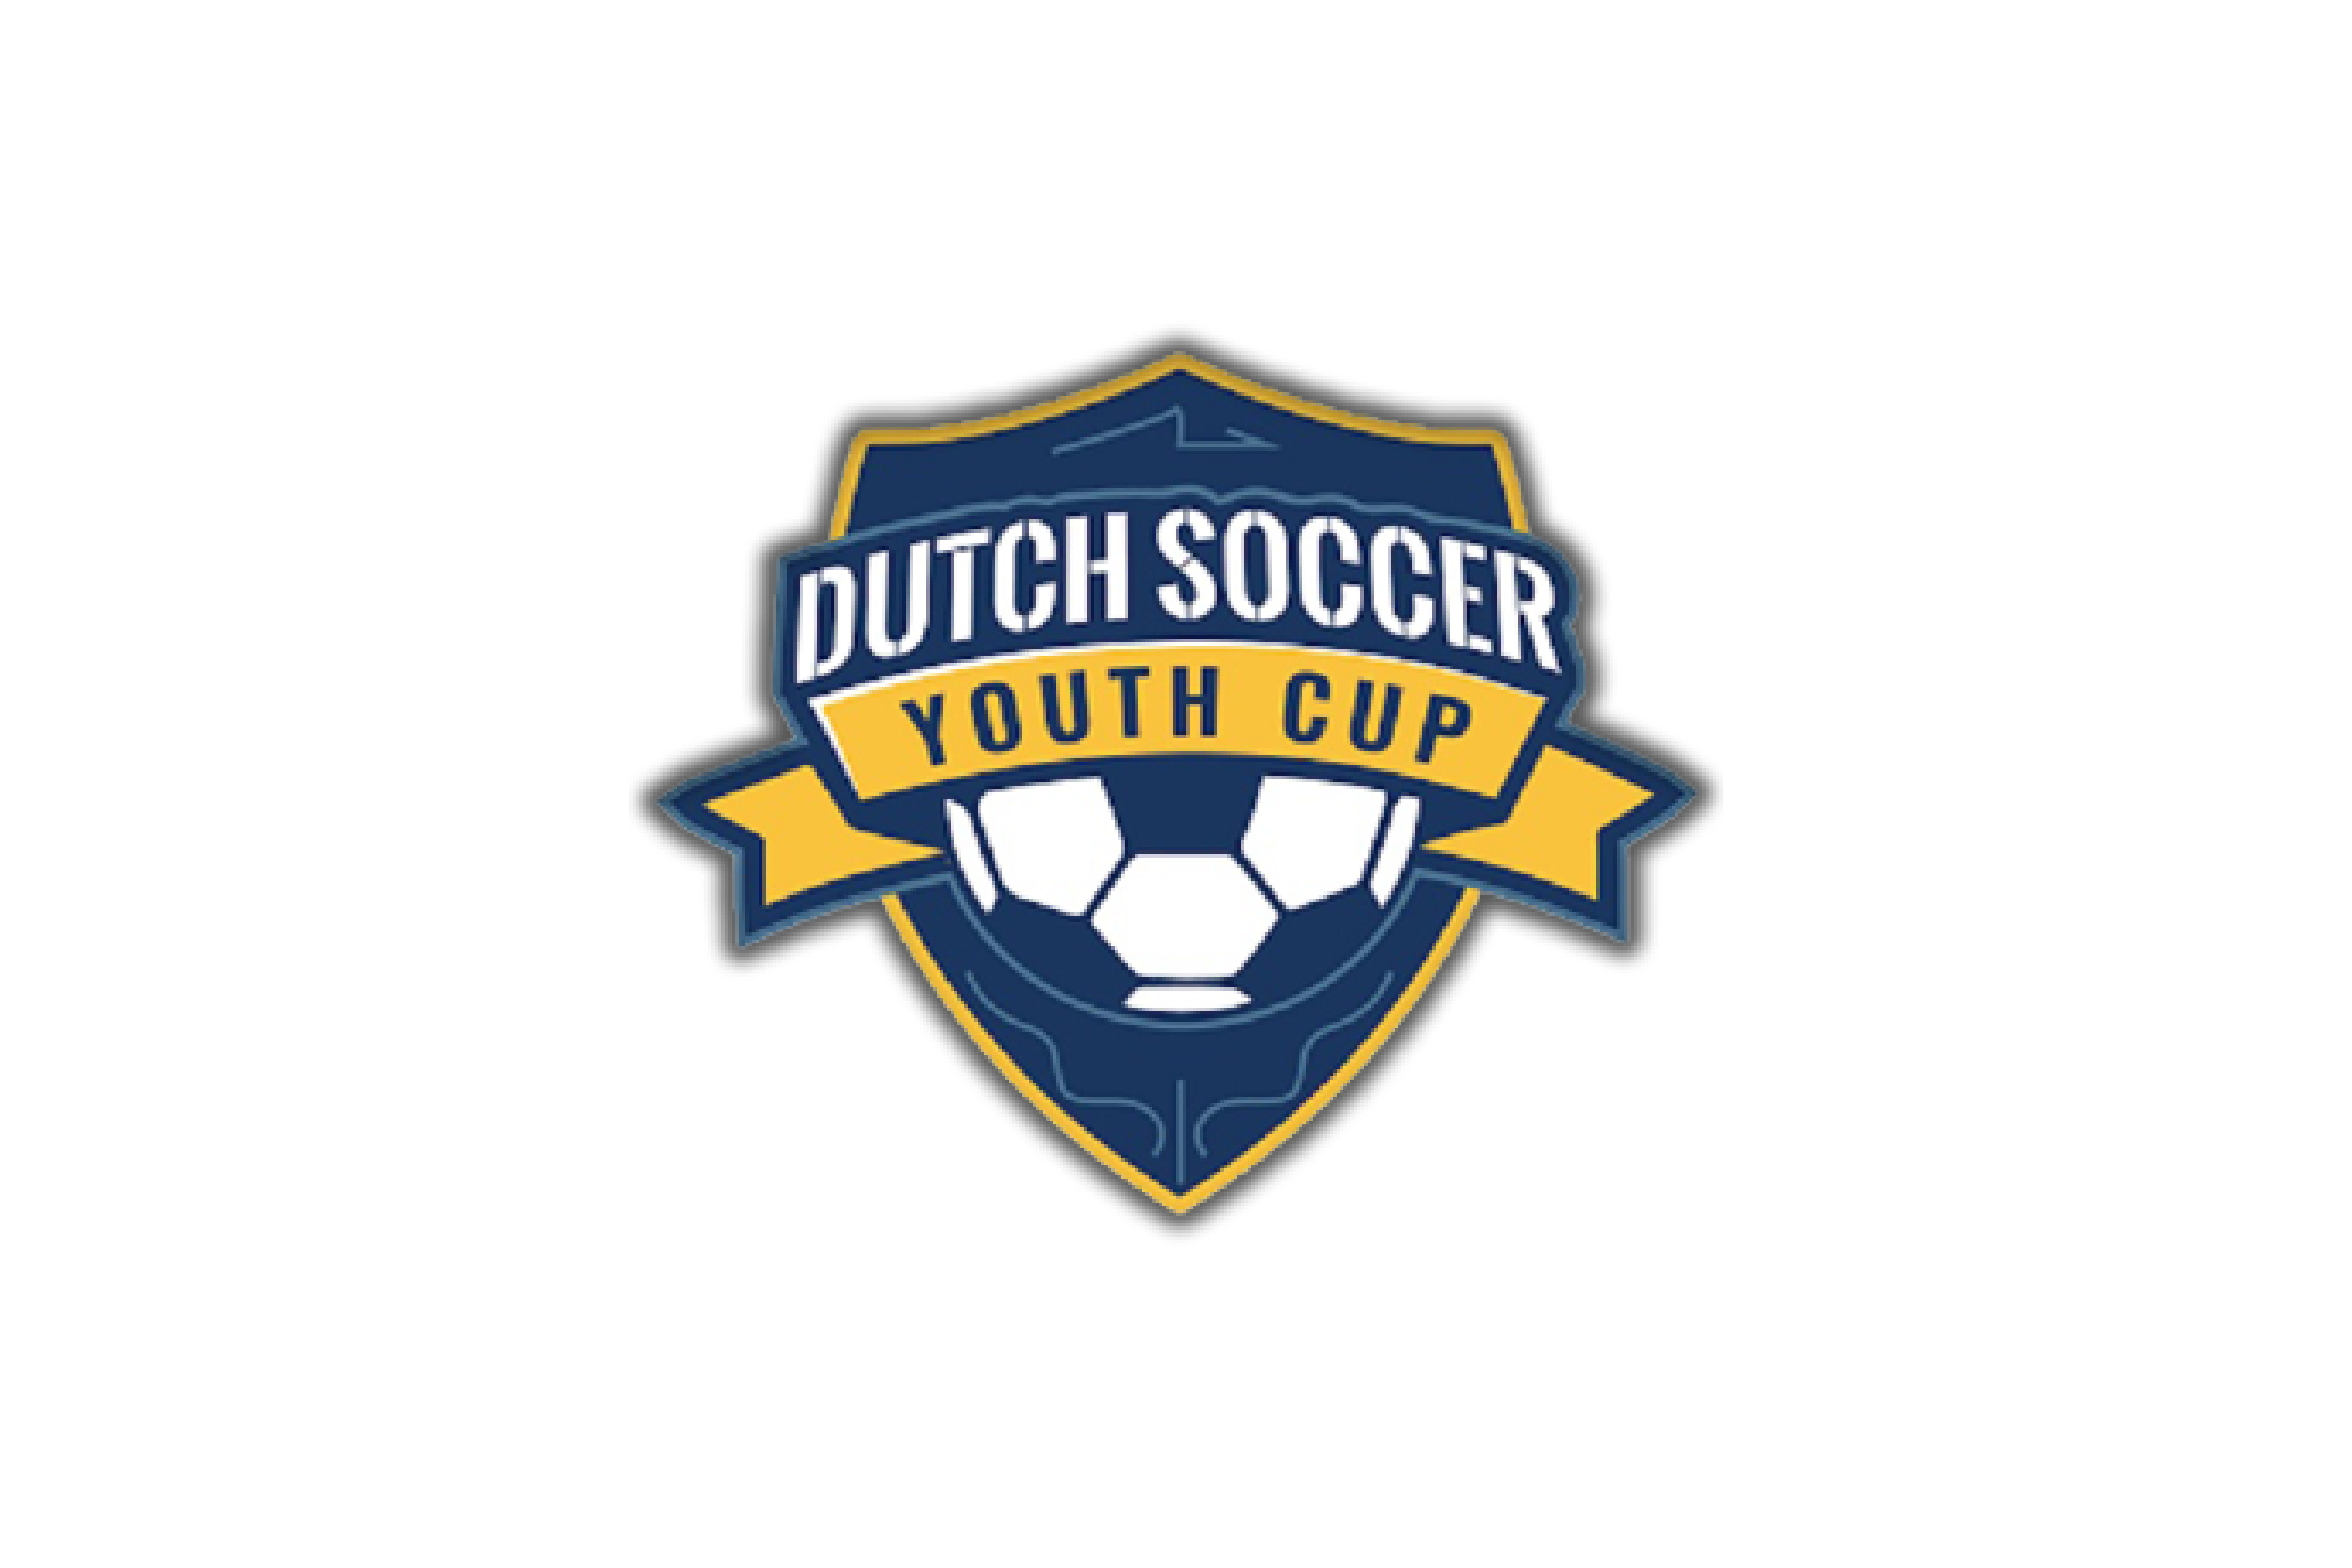 Dutch-Soccer-Youth-Cup